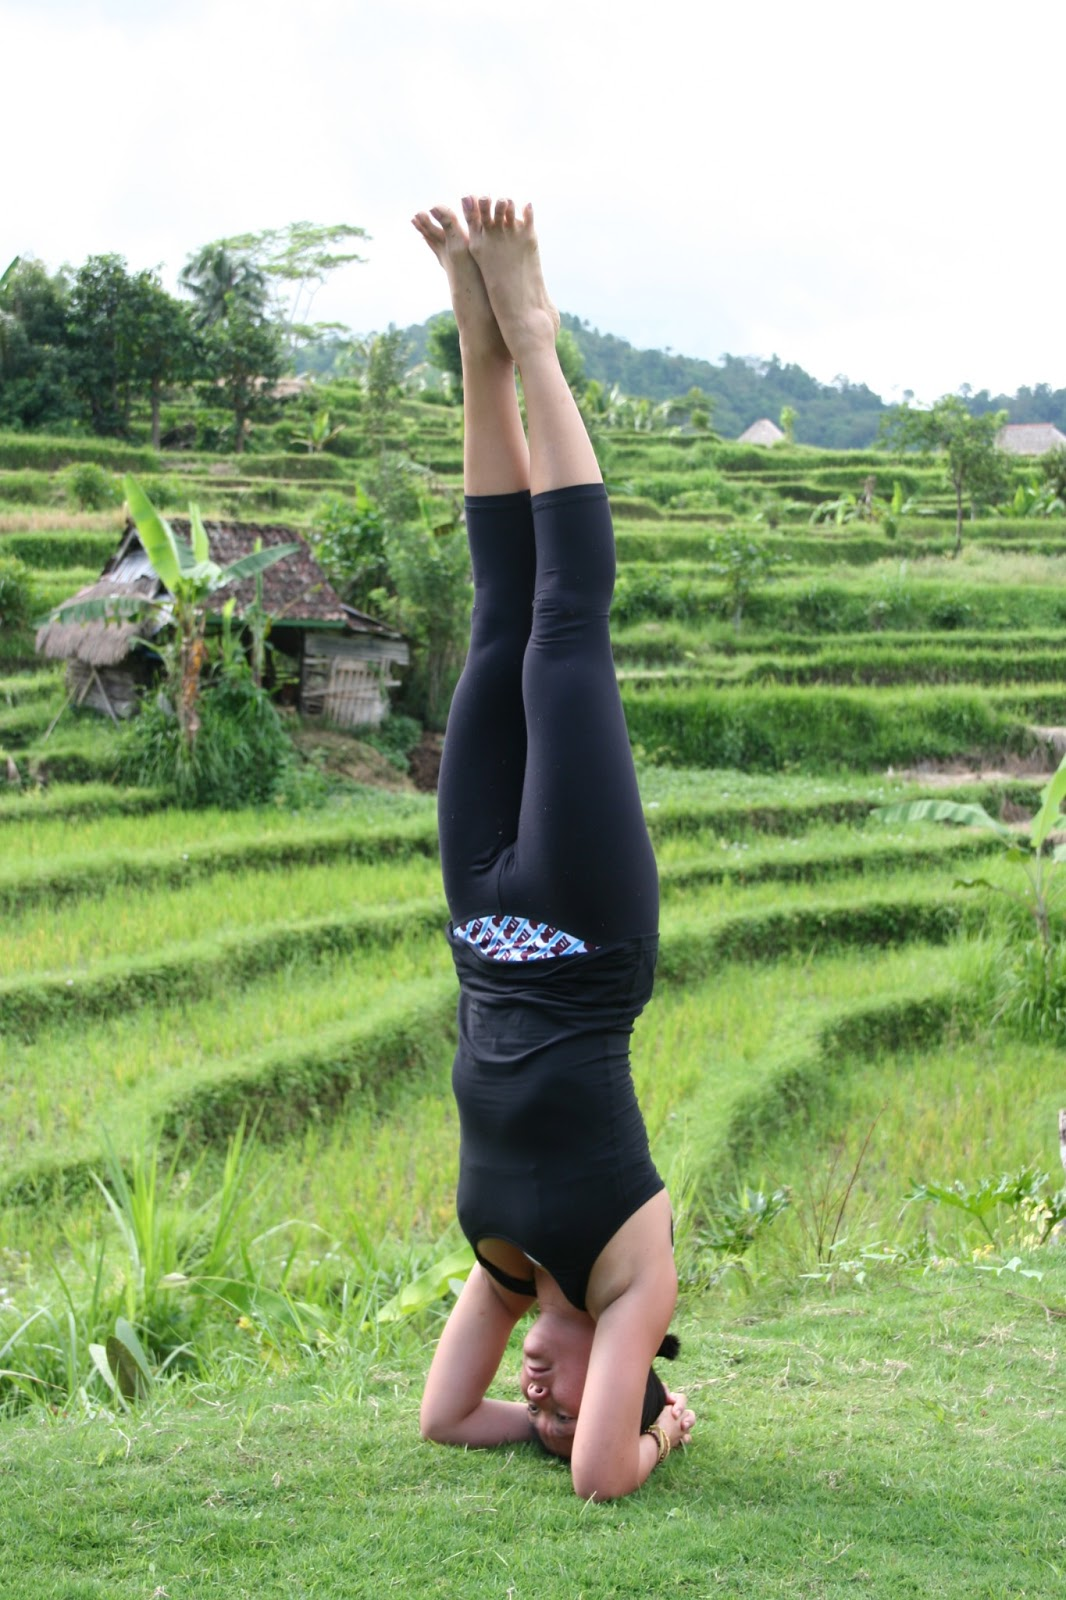 Discussion on this topic: Pyramid Pose or Parsvottonasana, pyramid-pose-or-parsvottonasana/